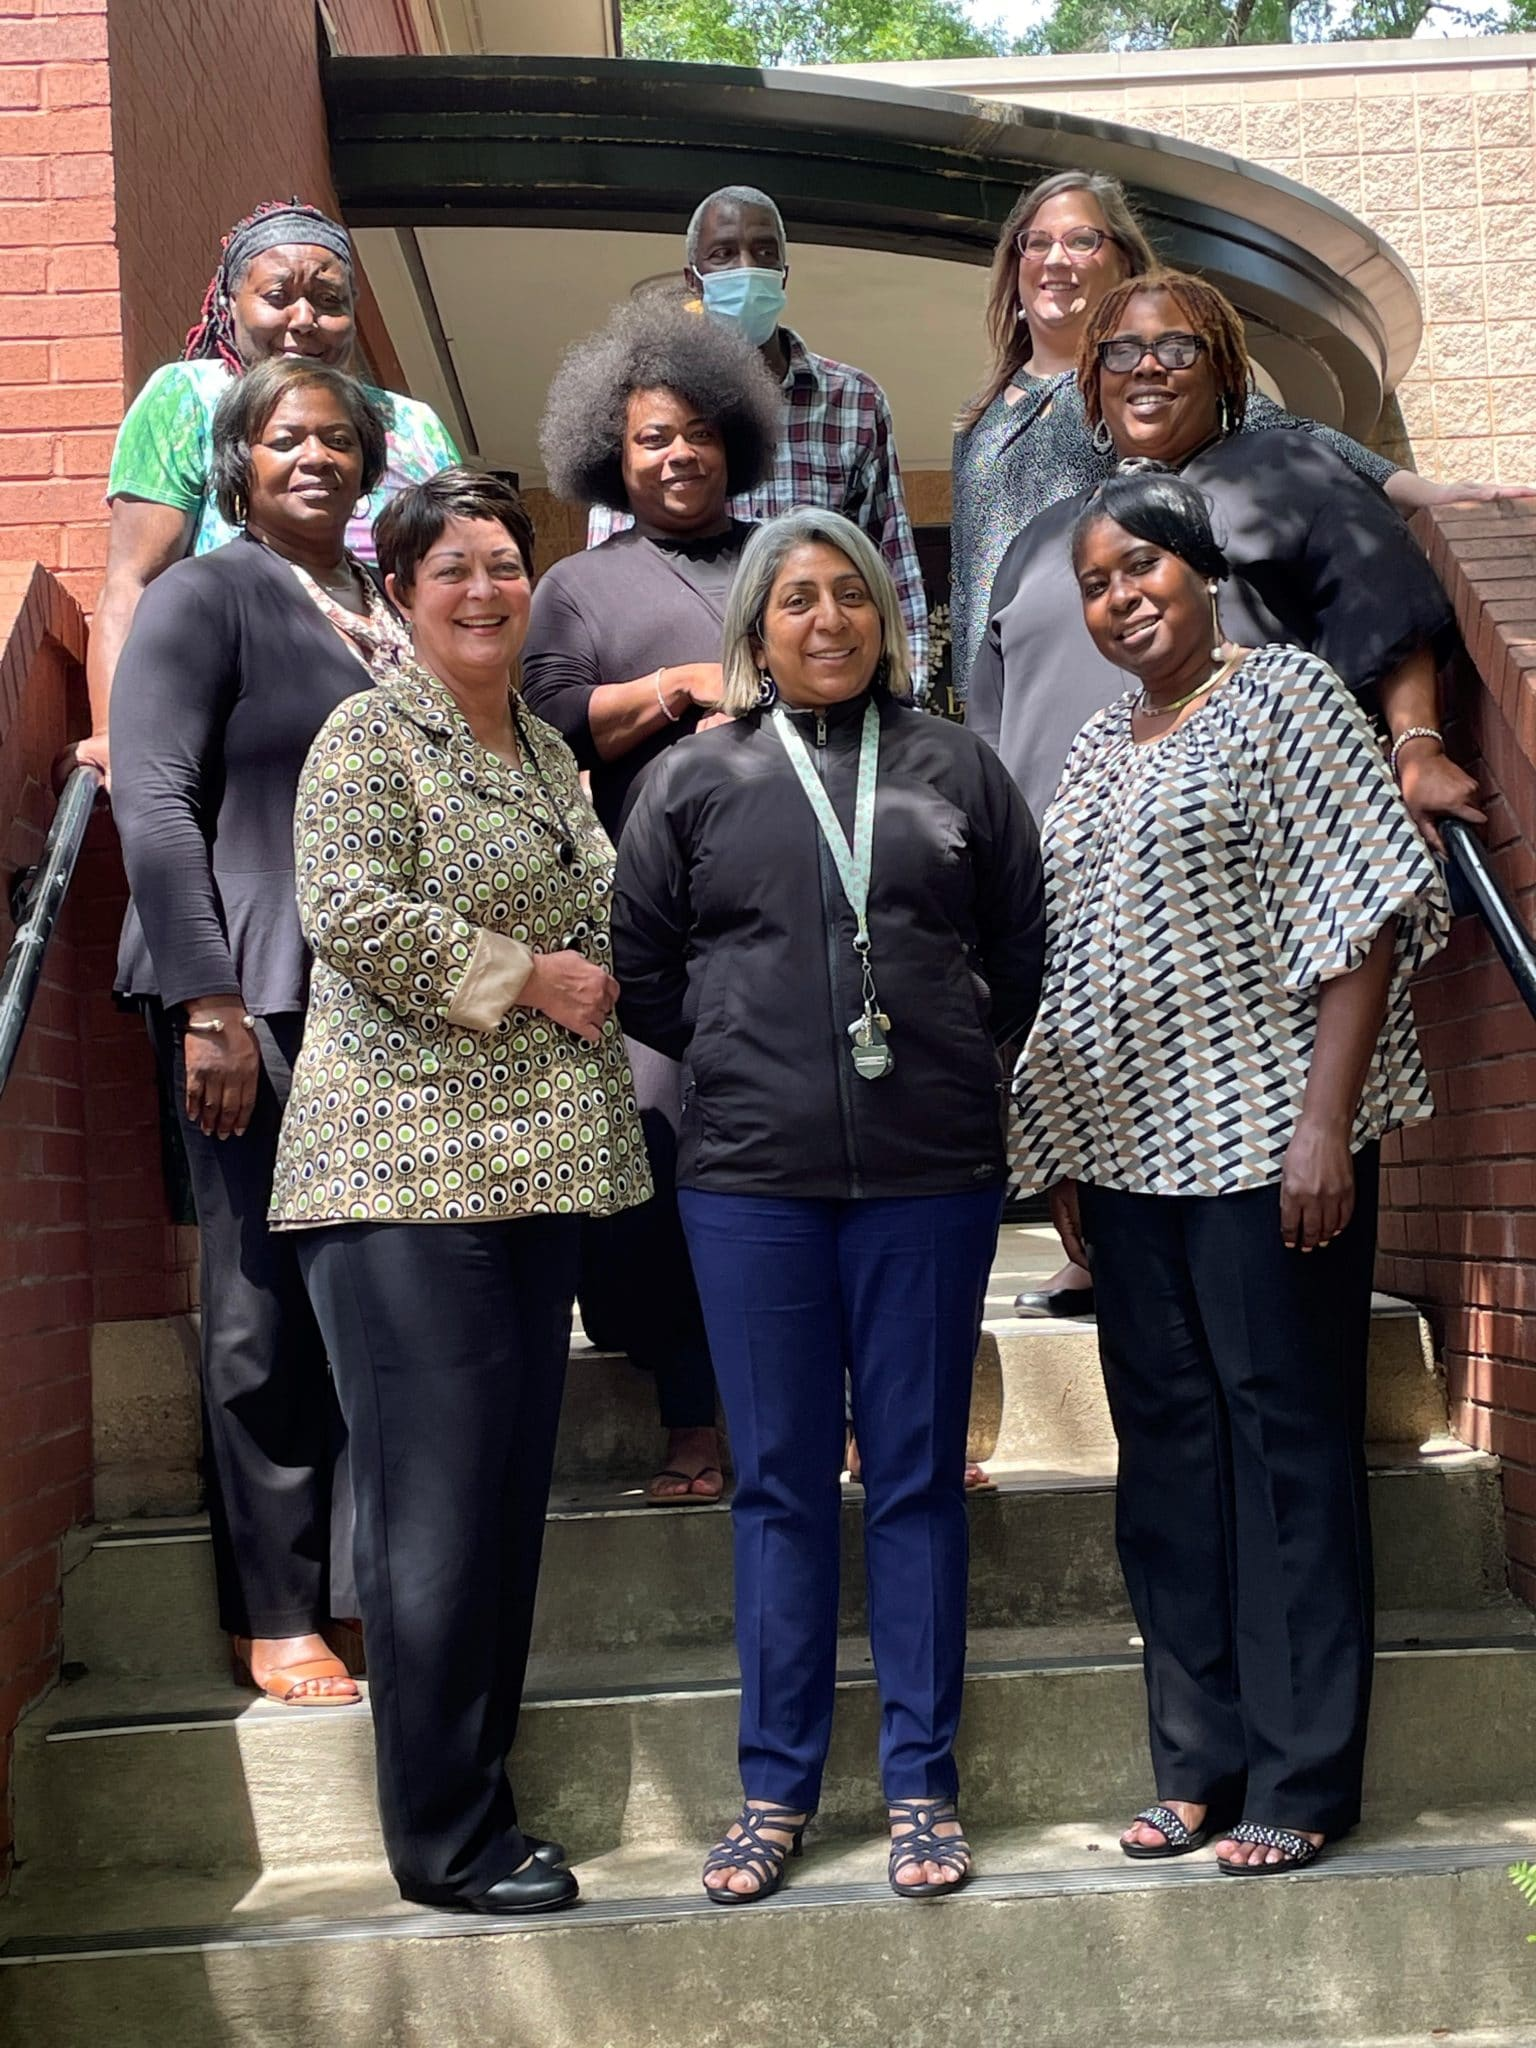 Community Options, Inc. of Greenville, SC was established to provide community-based options for residential and employment support services to individuals with disabilities living in Greenville, Inman, Spartanburg and other local areas.